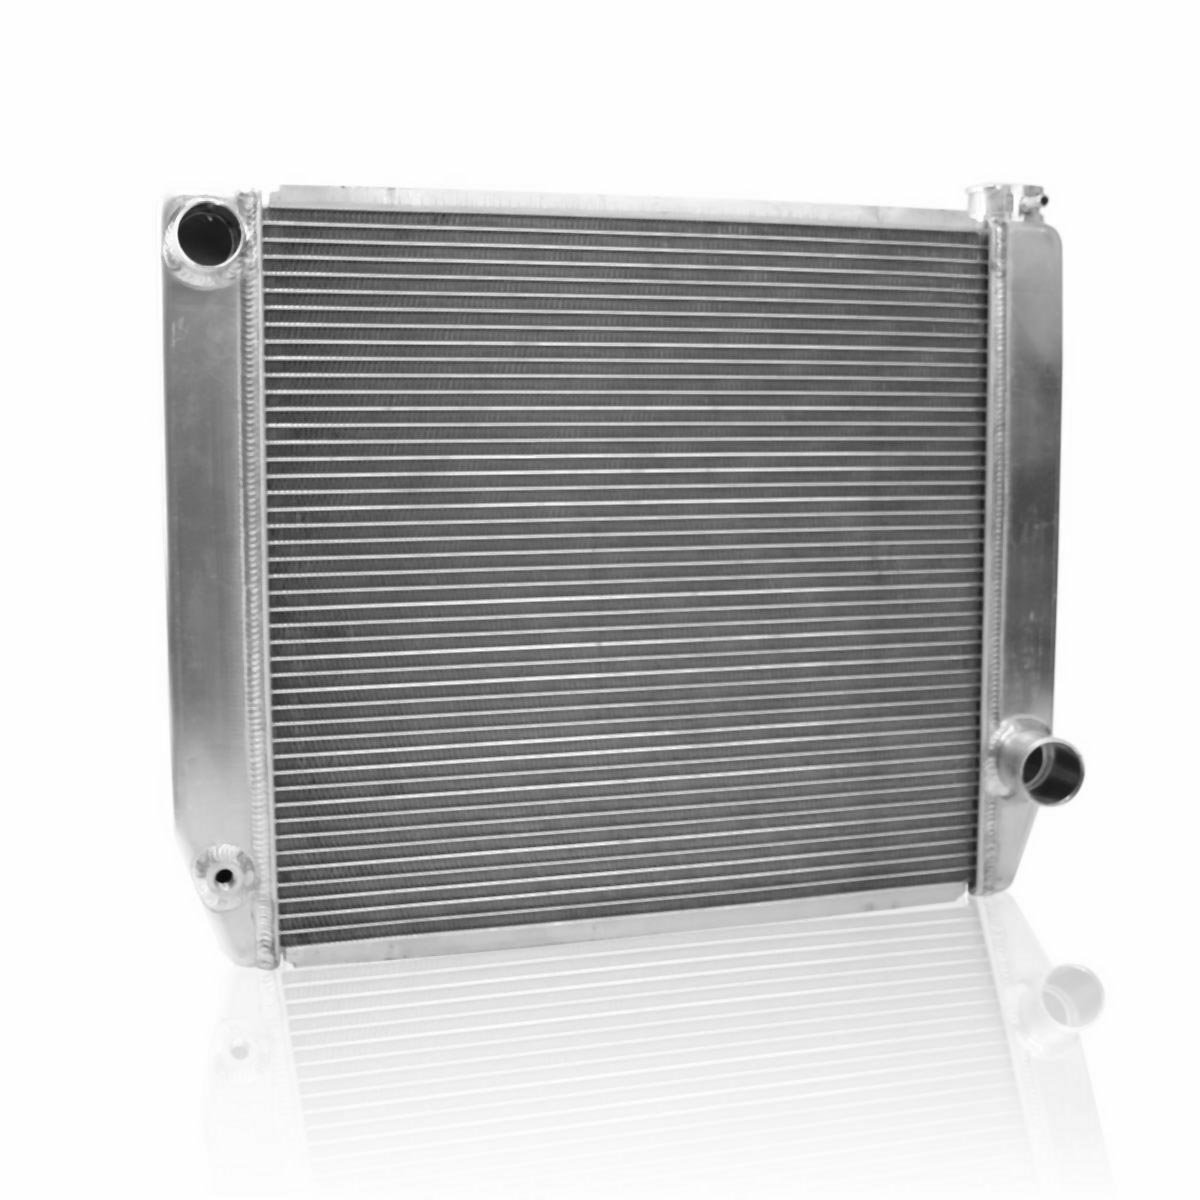 Griffin Radiator 1-55202-X MaxCool 24' x 19' 2-Row Universal Race Radiator with 1.25' Tube and Top, Left, Bottom, Right Outlets